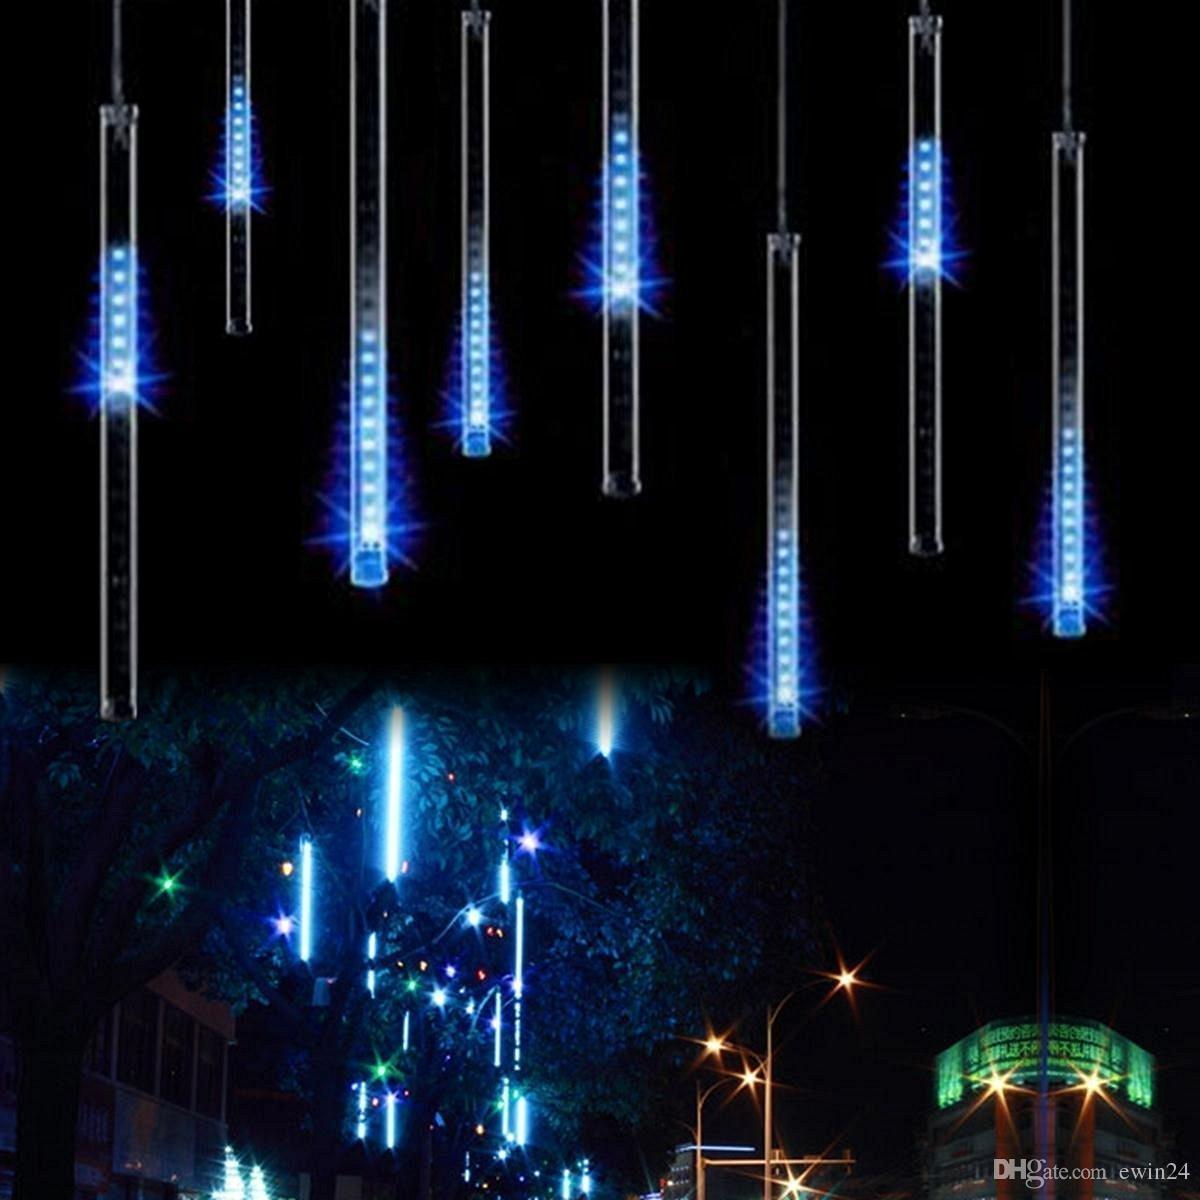 Led Christmas Lights Outdoor.30cm 144led Meteor Shower Rain Tube Led Christmas Light Wedding Party Garden Xmas String Light Outdoor Holiday Lighting Clear String Lights Cool